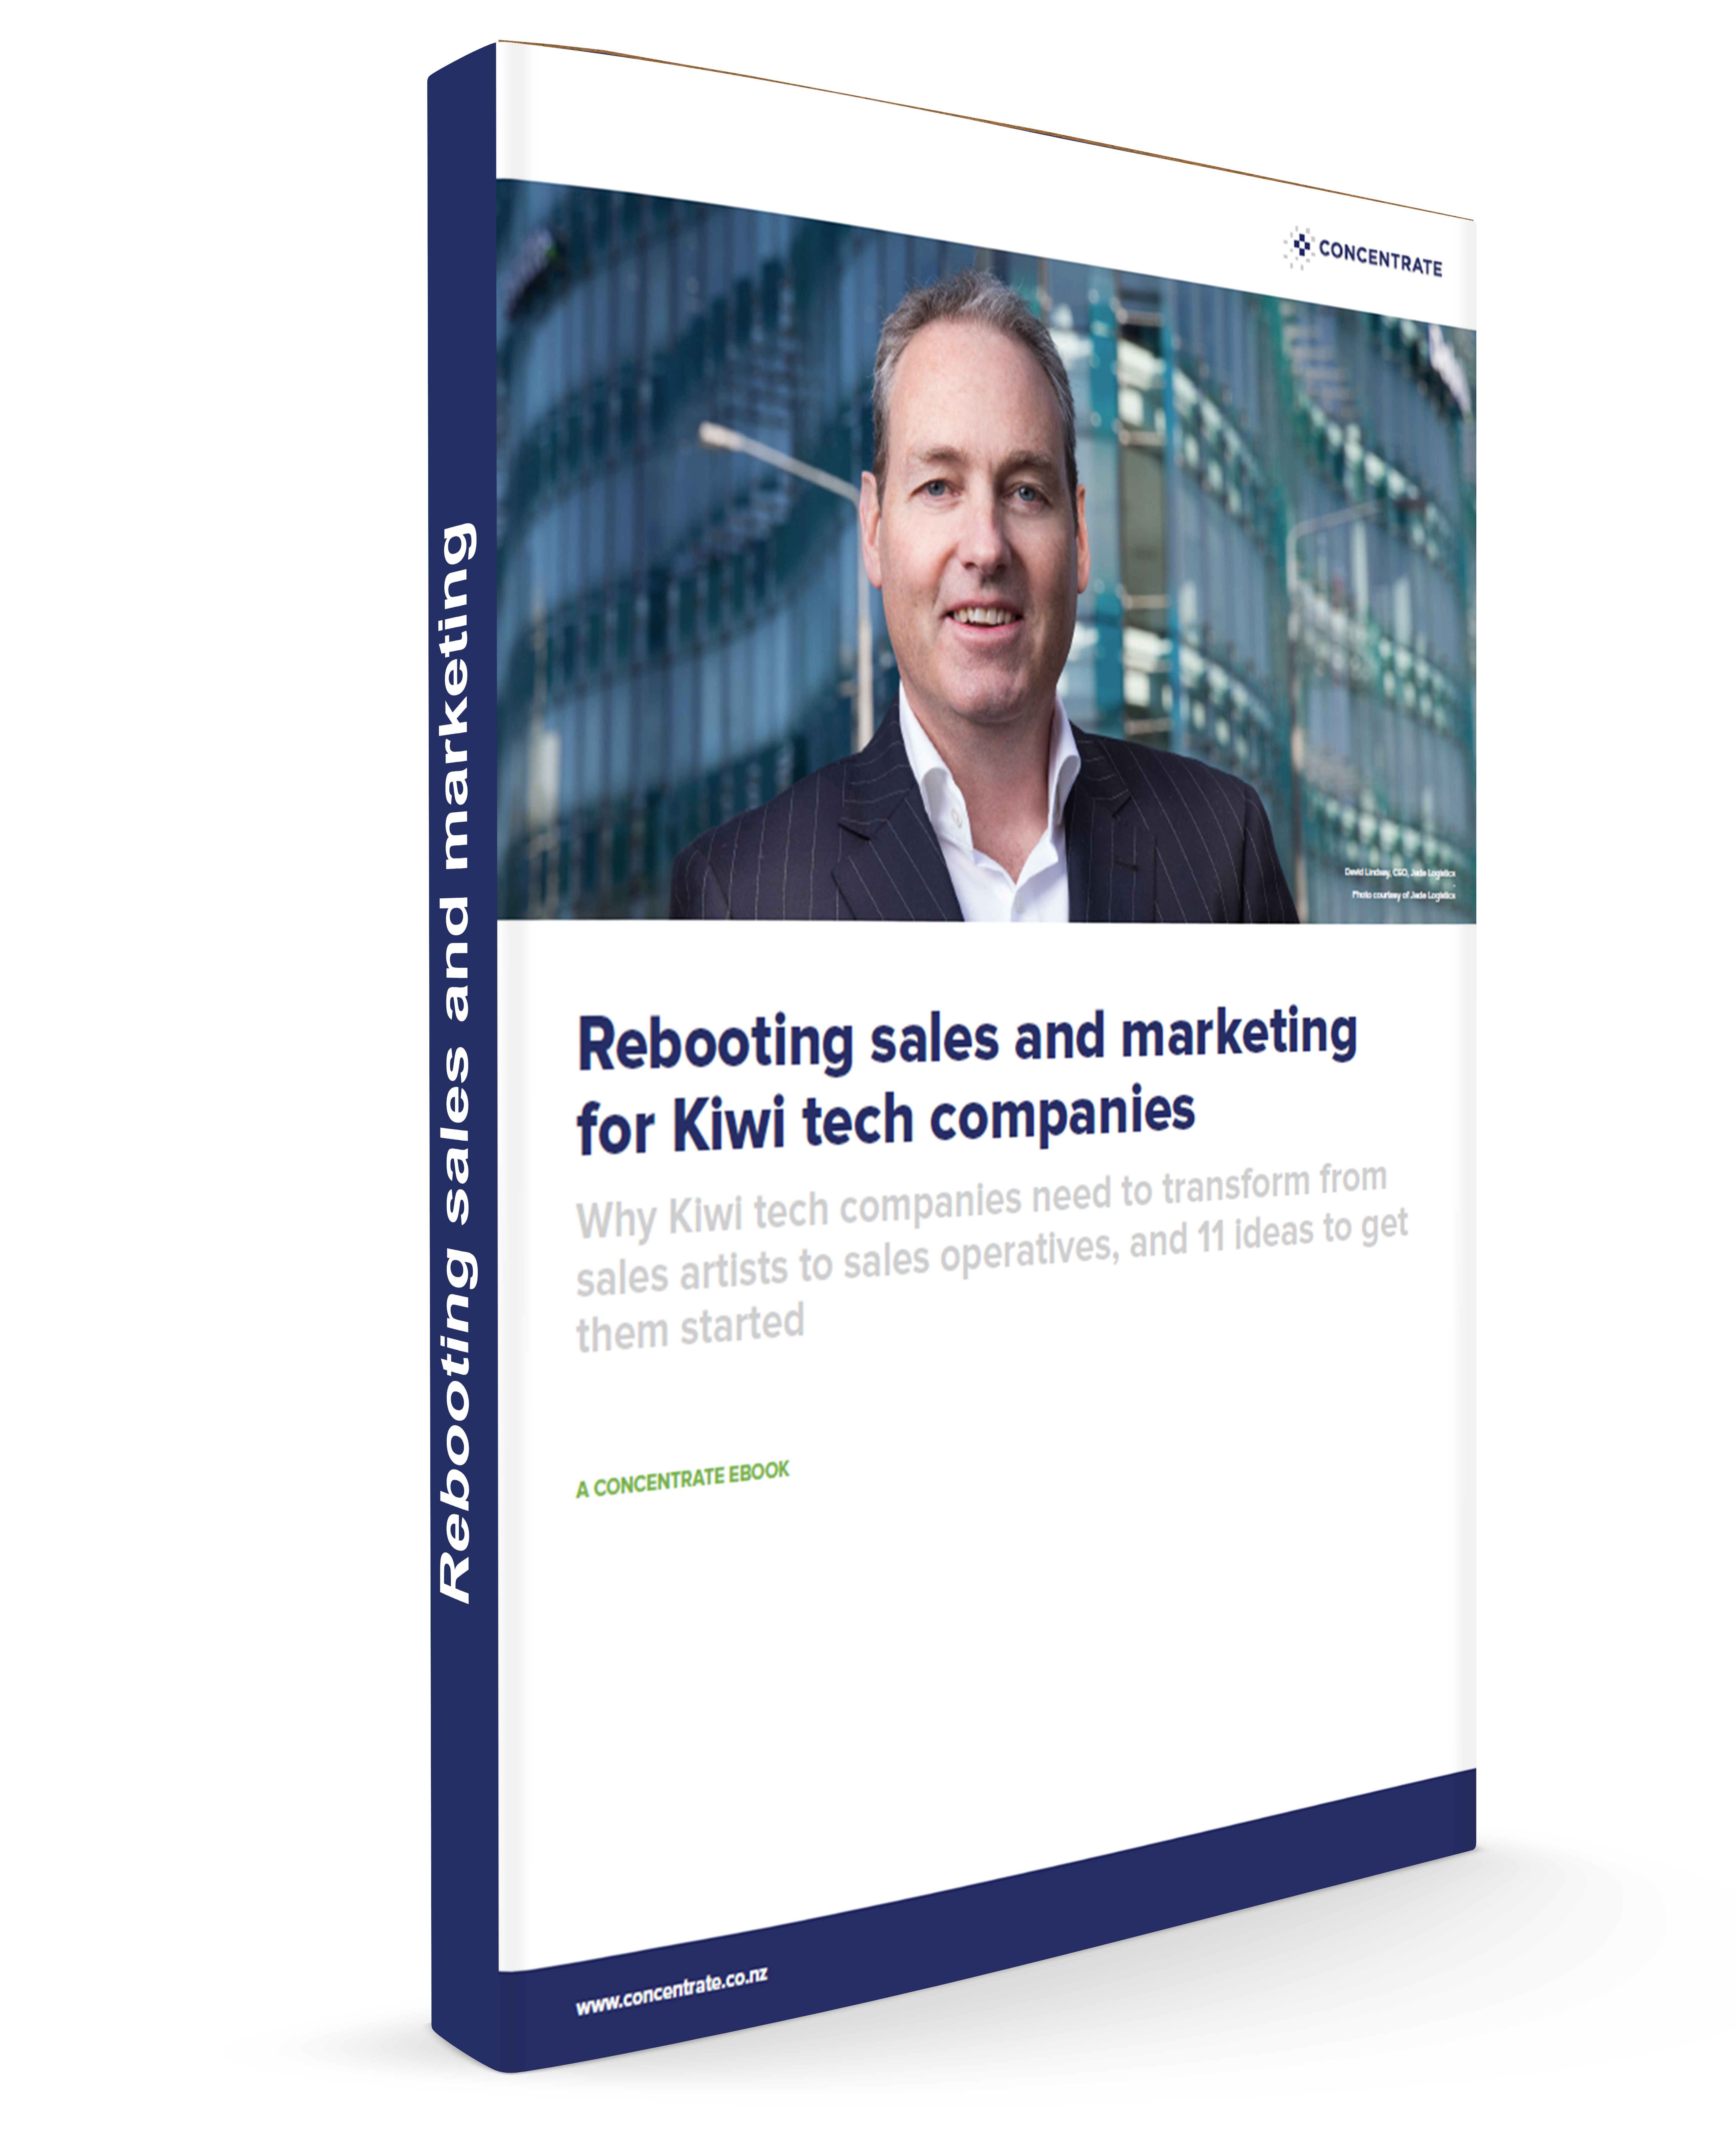 Rebooting sales and marketing 3D Cover v3